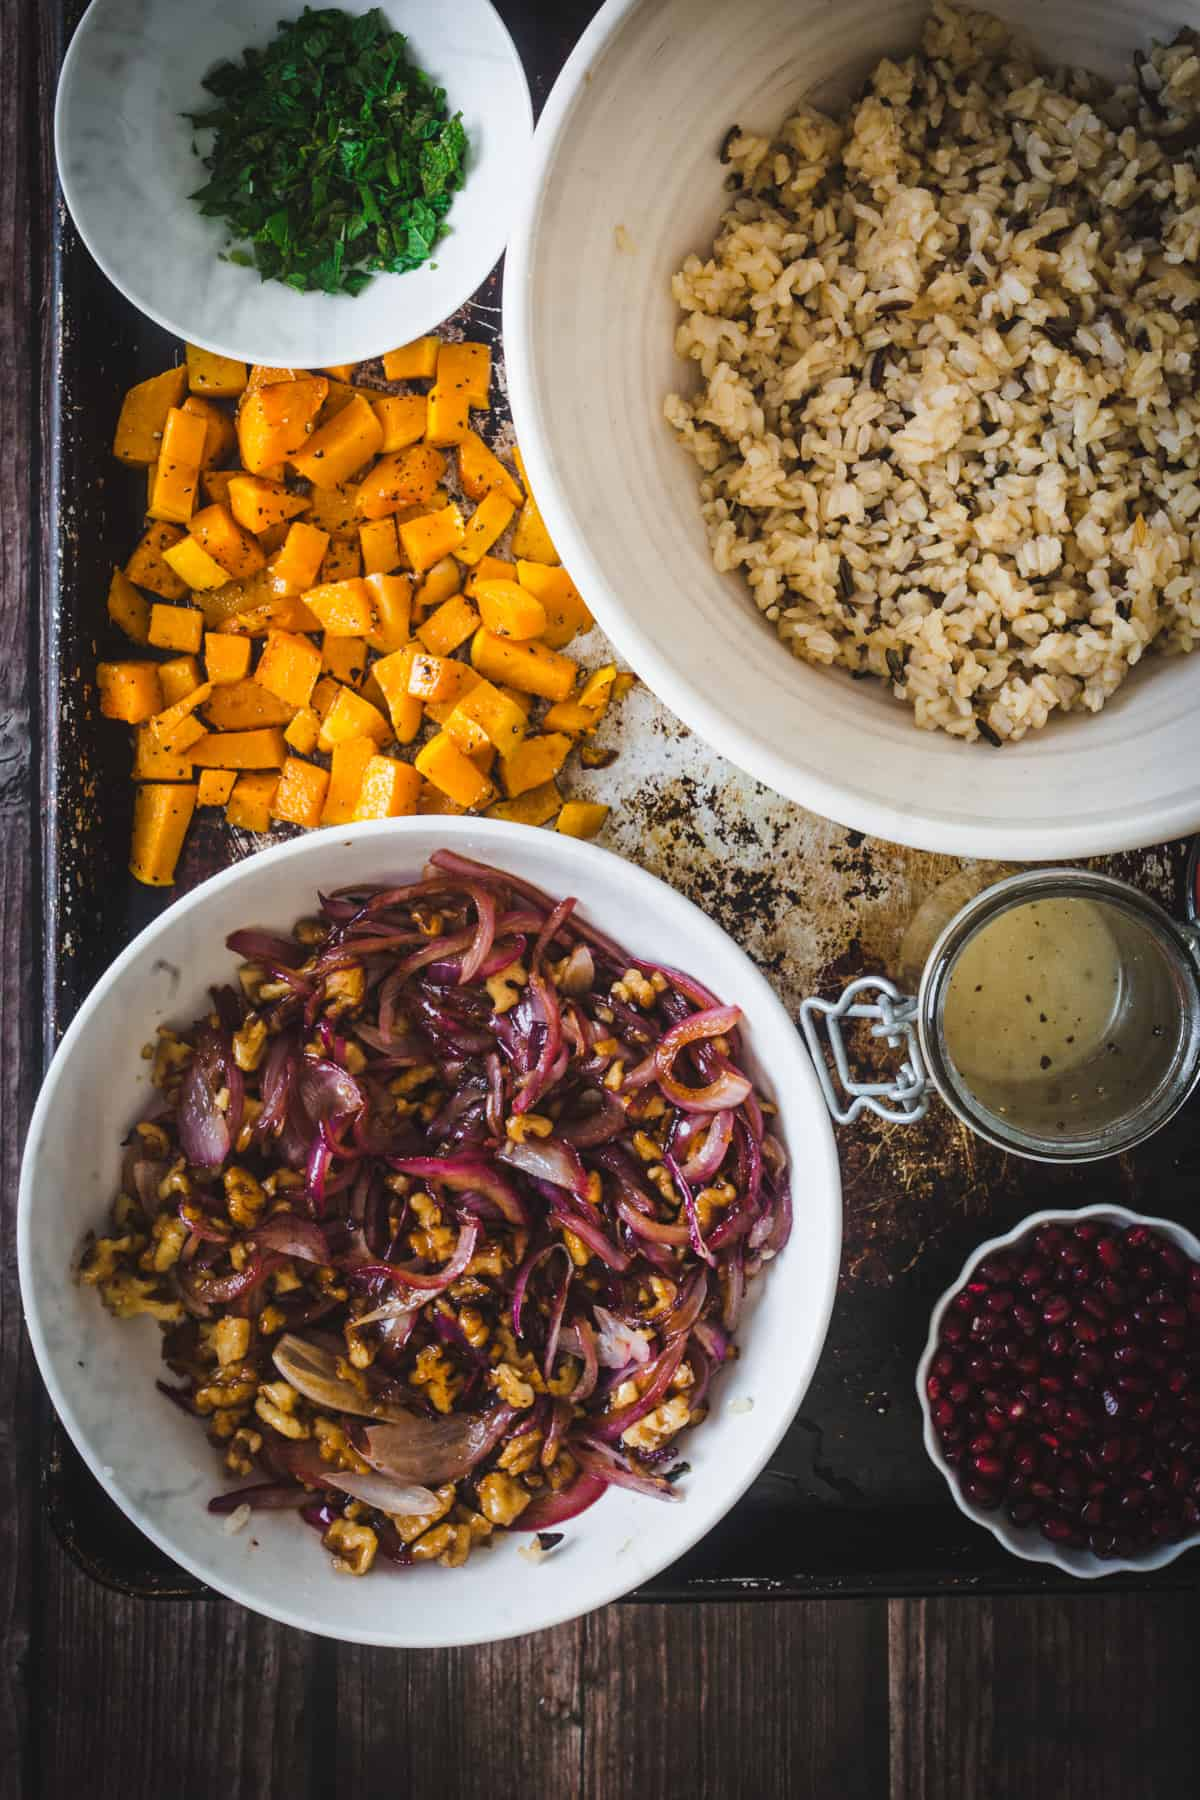 ingredients for assembling wild rice pilaf